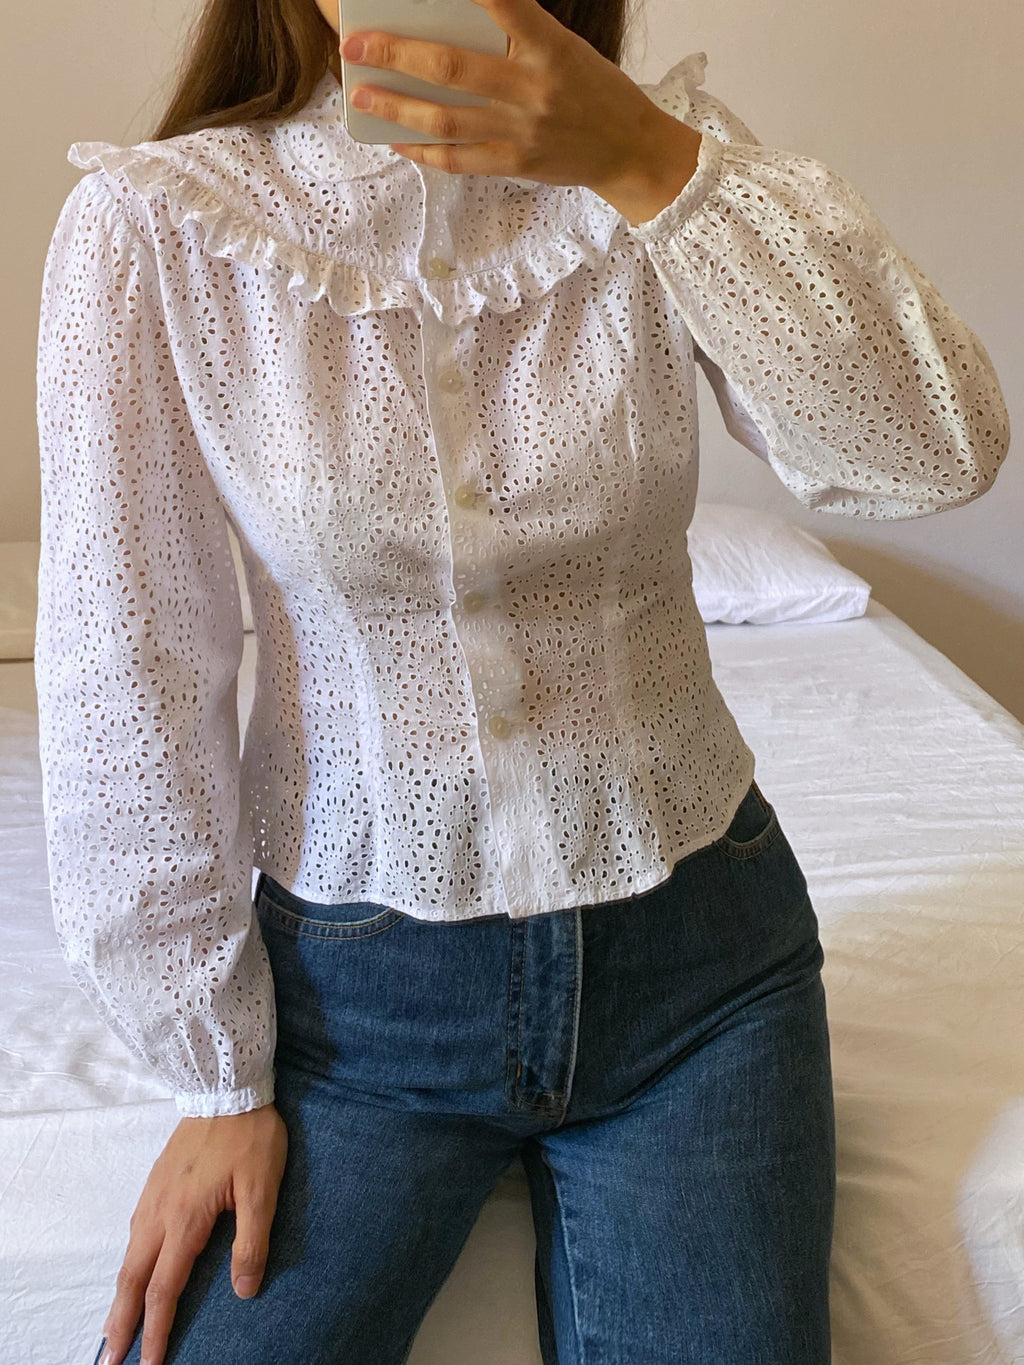 Vintage antique pure sangallo cotton ruffled details collar blouse